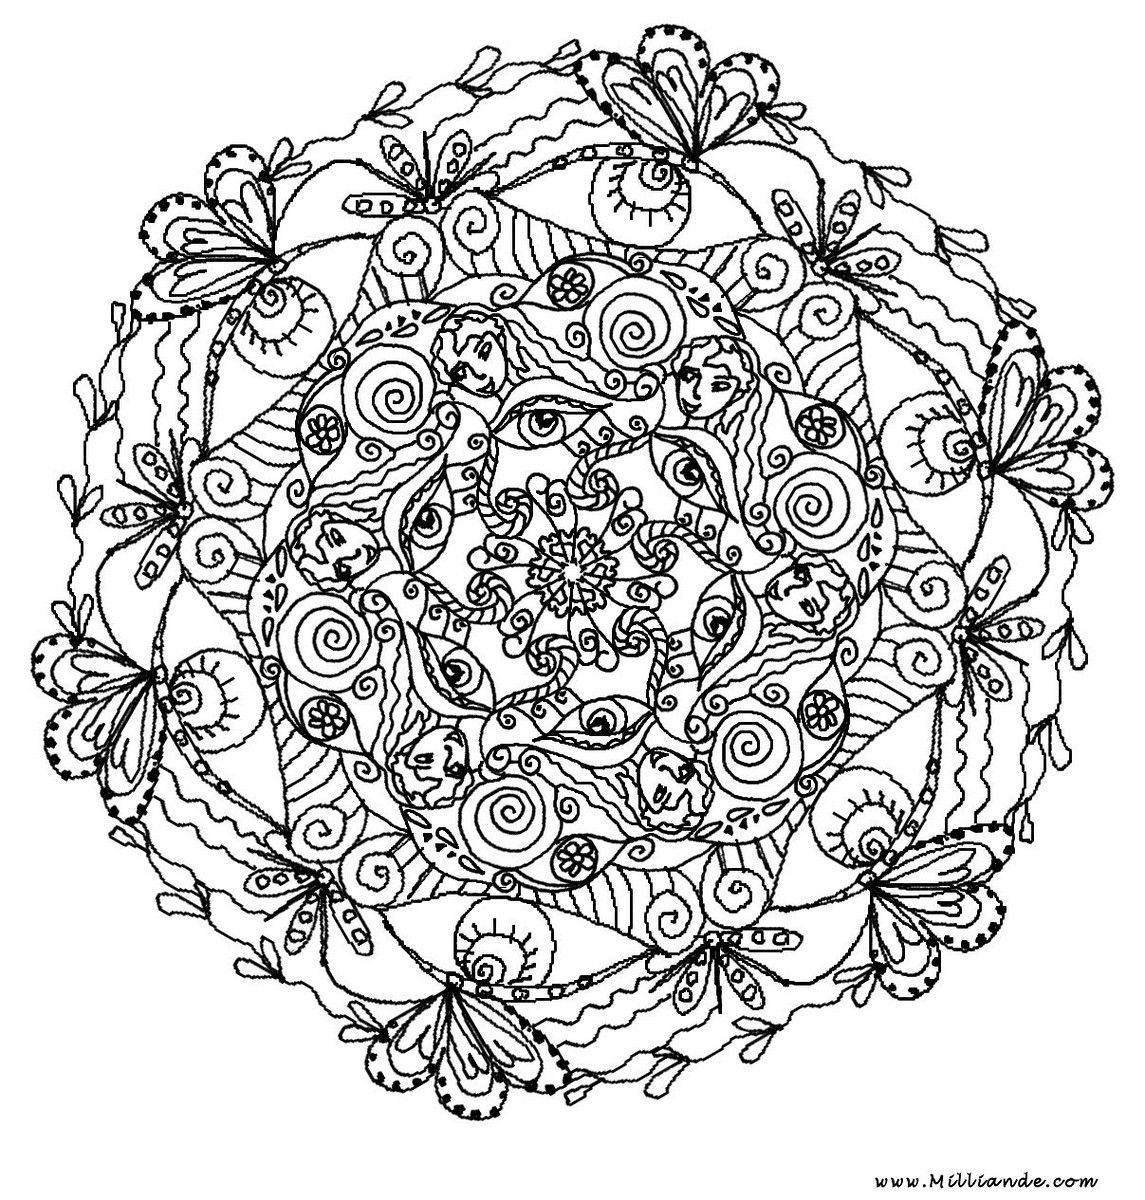 Printable coloring pages for adults flowers - Center Yourself With Mandalas Coloring Pages